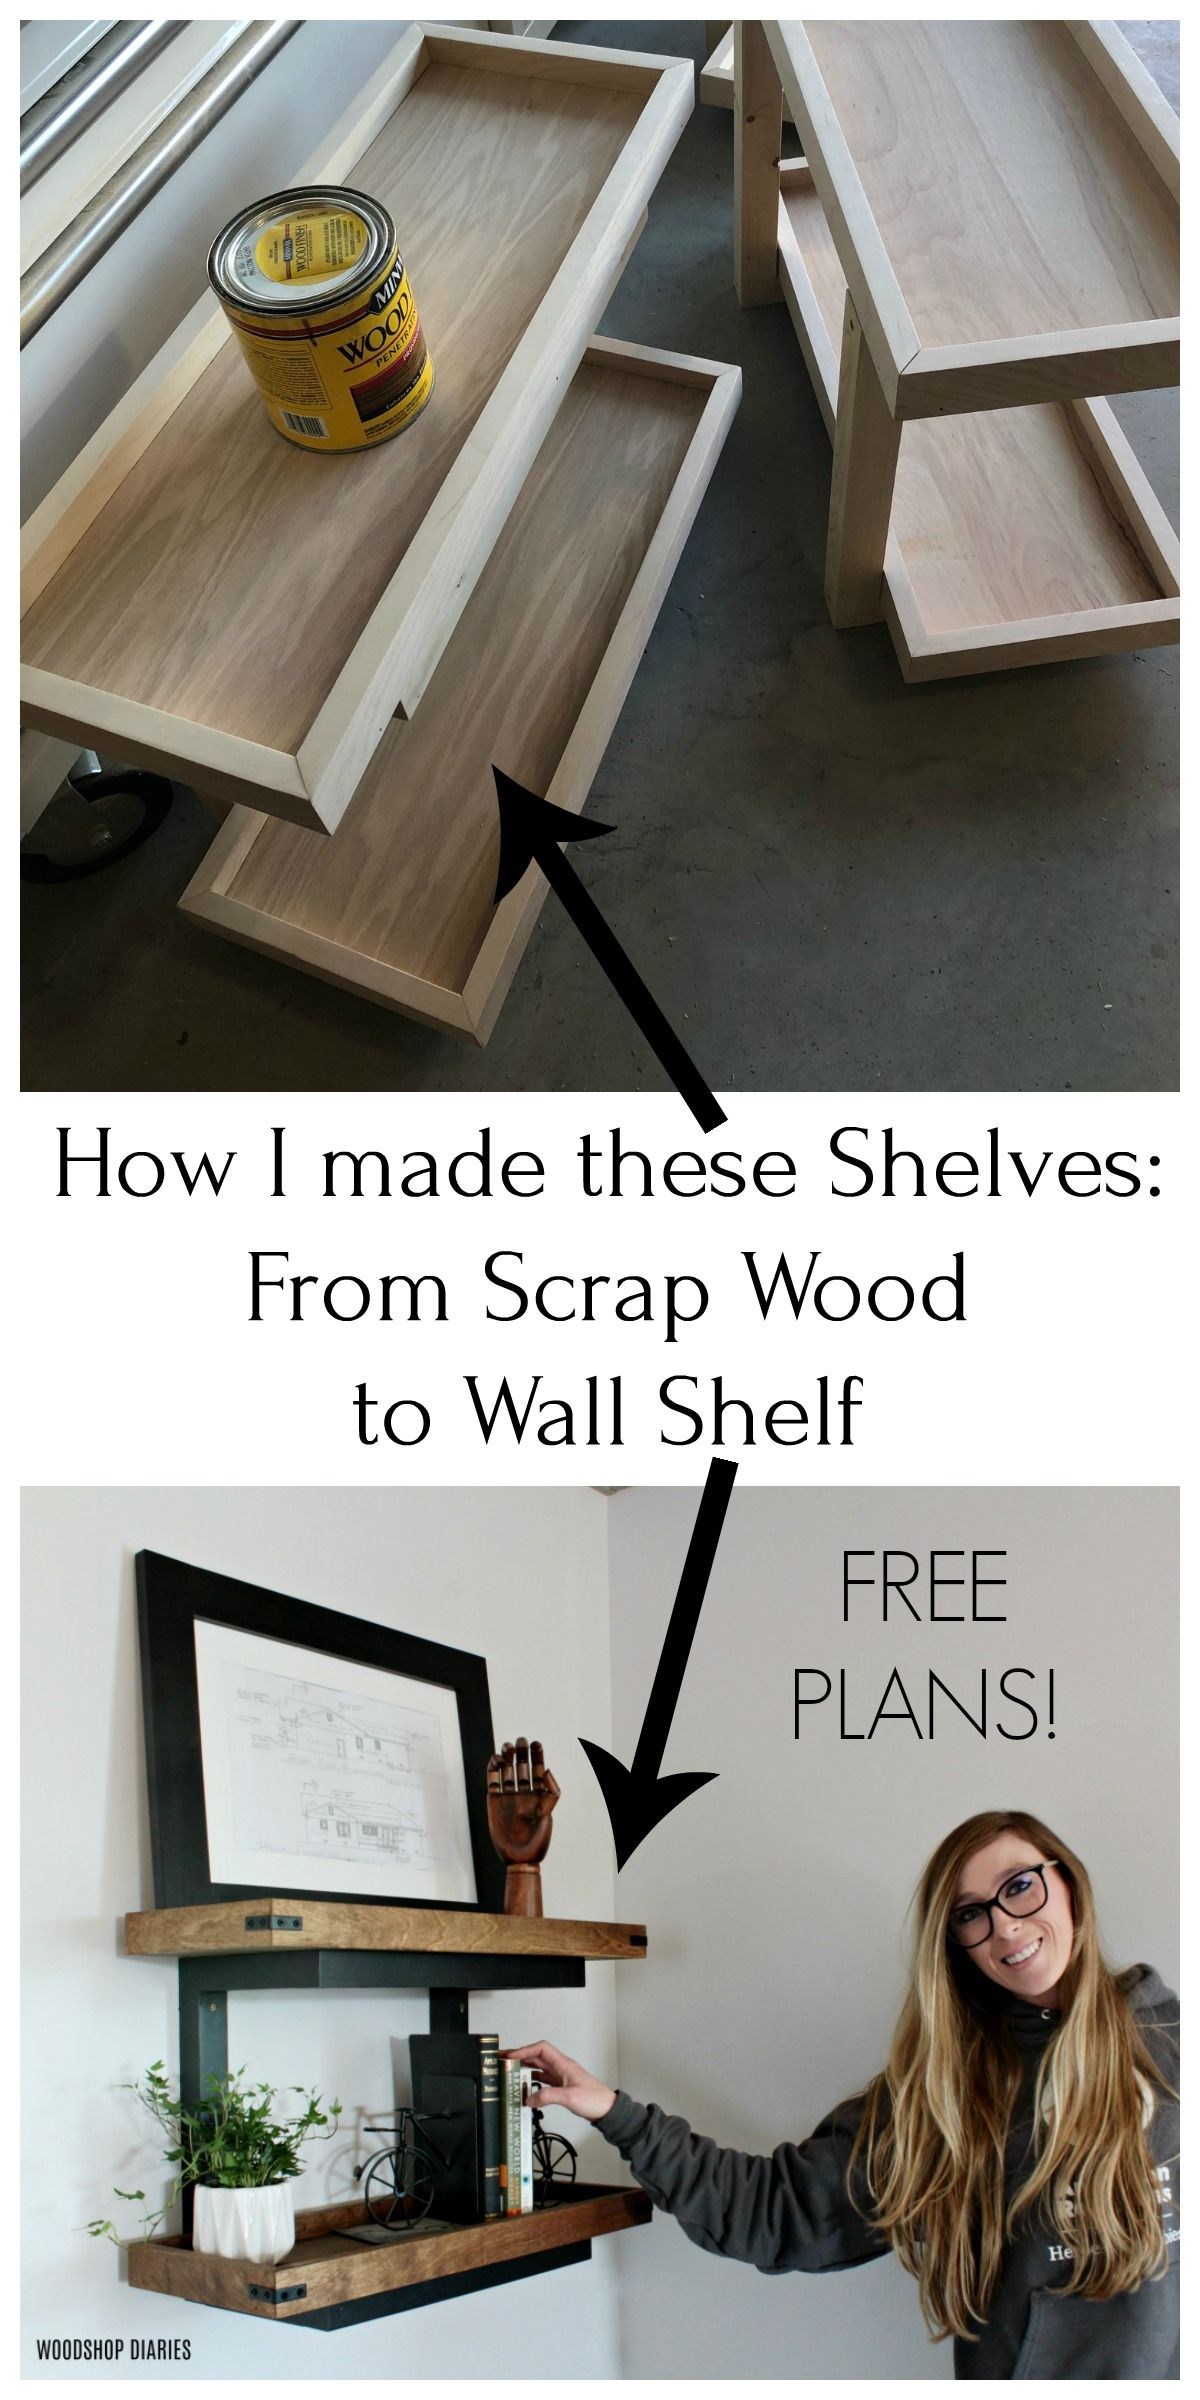 How To Build Floating Diy Wall Shelves Without Brackets From Scraps In 2020 Wall Shelves Diy Wall Shelves Floating Wall Shelves